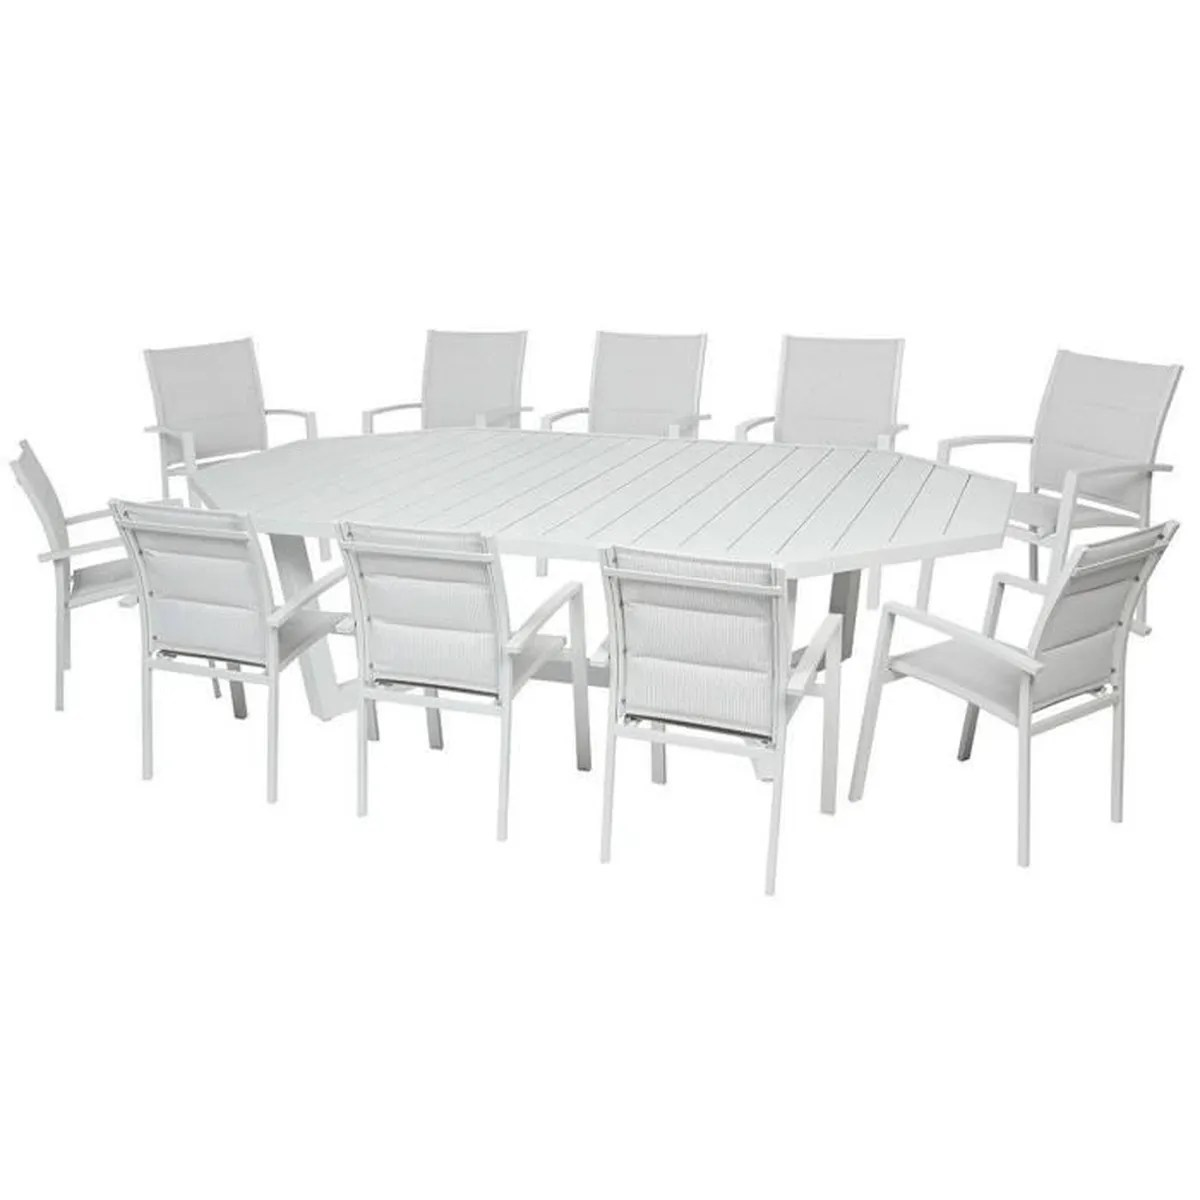 Salon De Jardin Teck Table Octogonale Table Octogonale En Aluminium Coloris Galet Dim L 274 X D 169